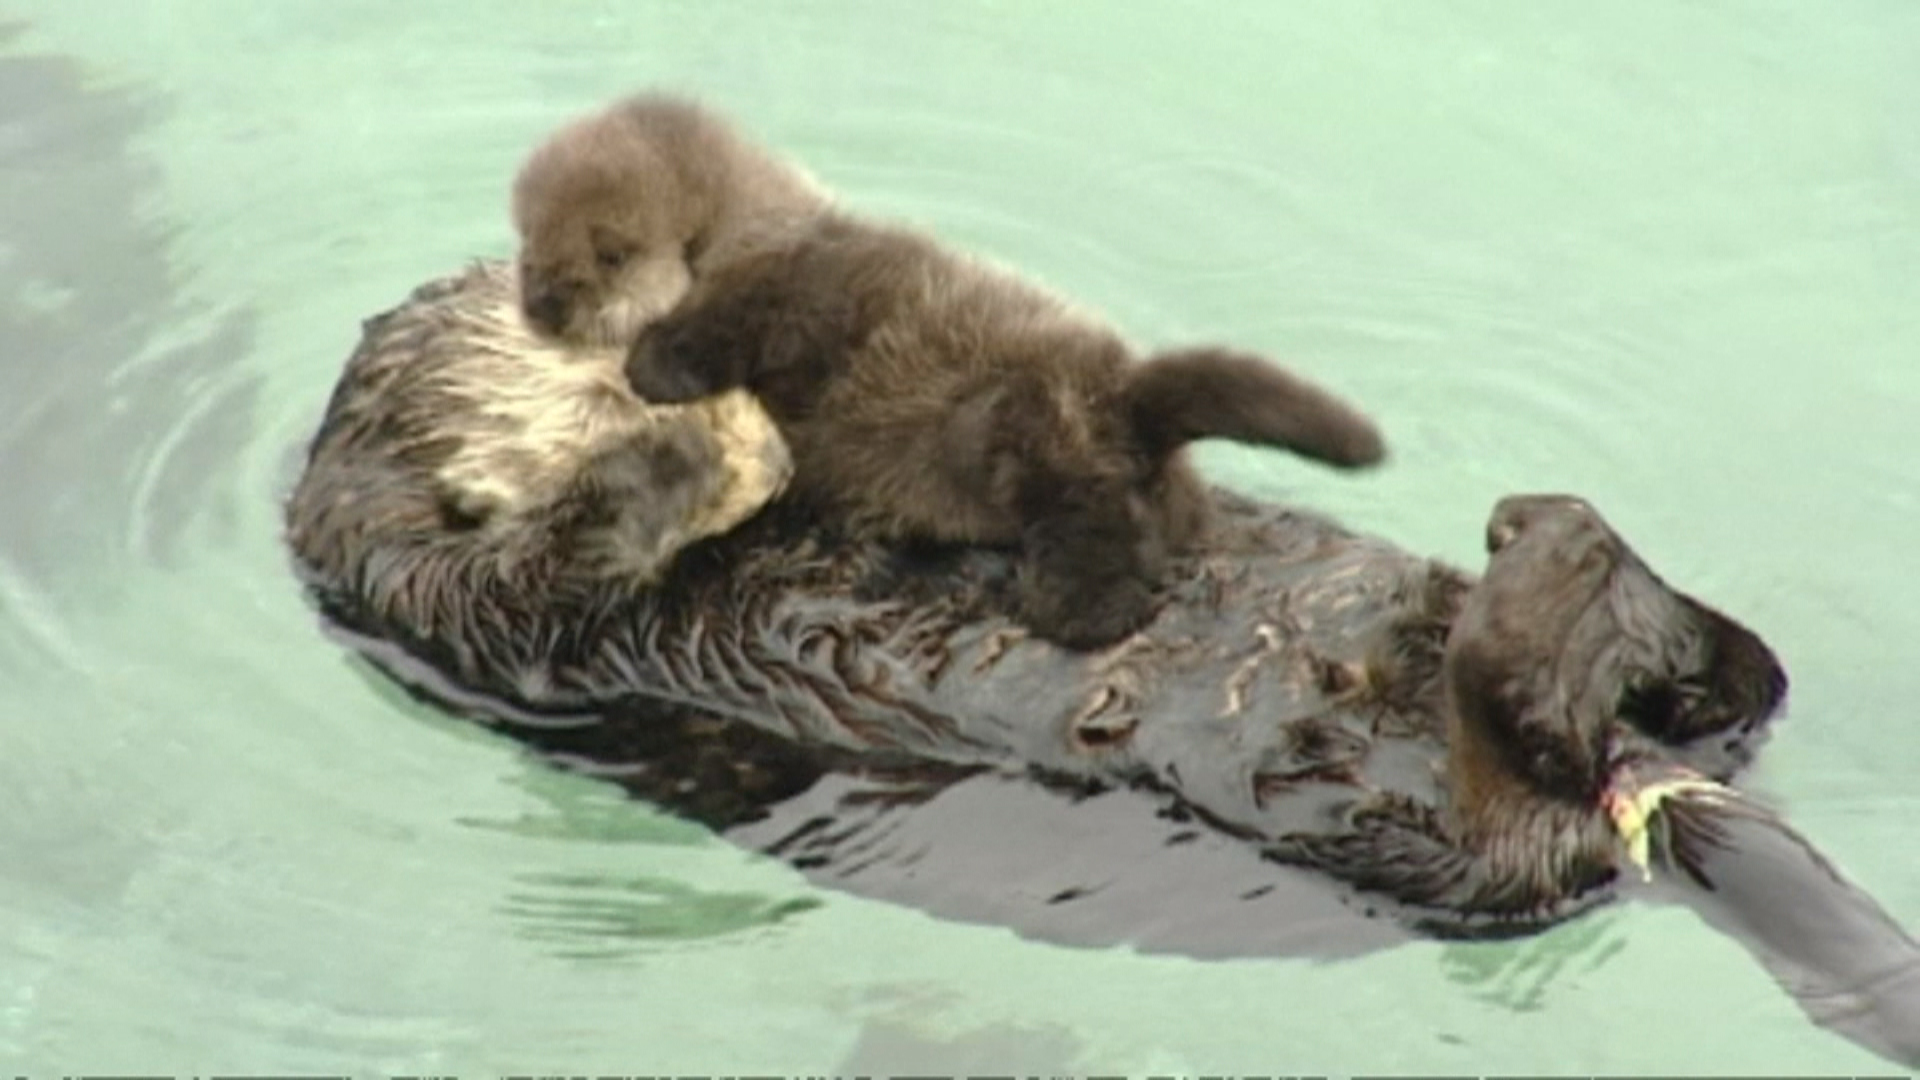 Cute Otter Wallpaper You Otter Get A Look At This Cute Baby Otter